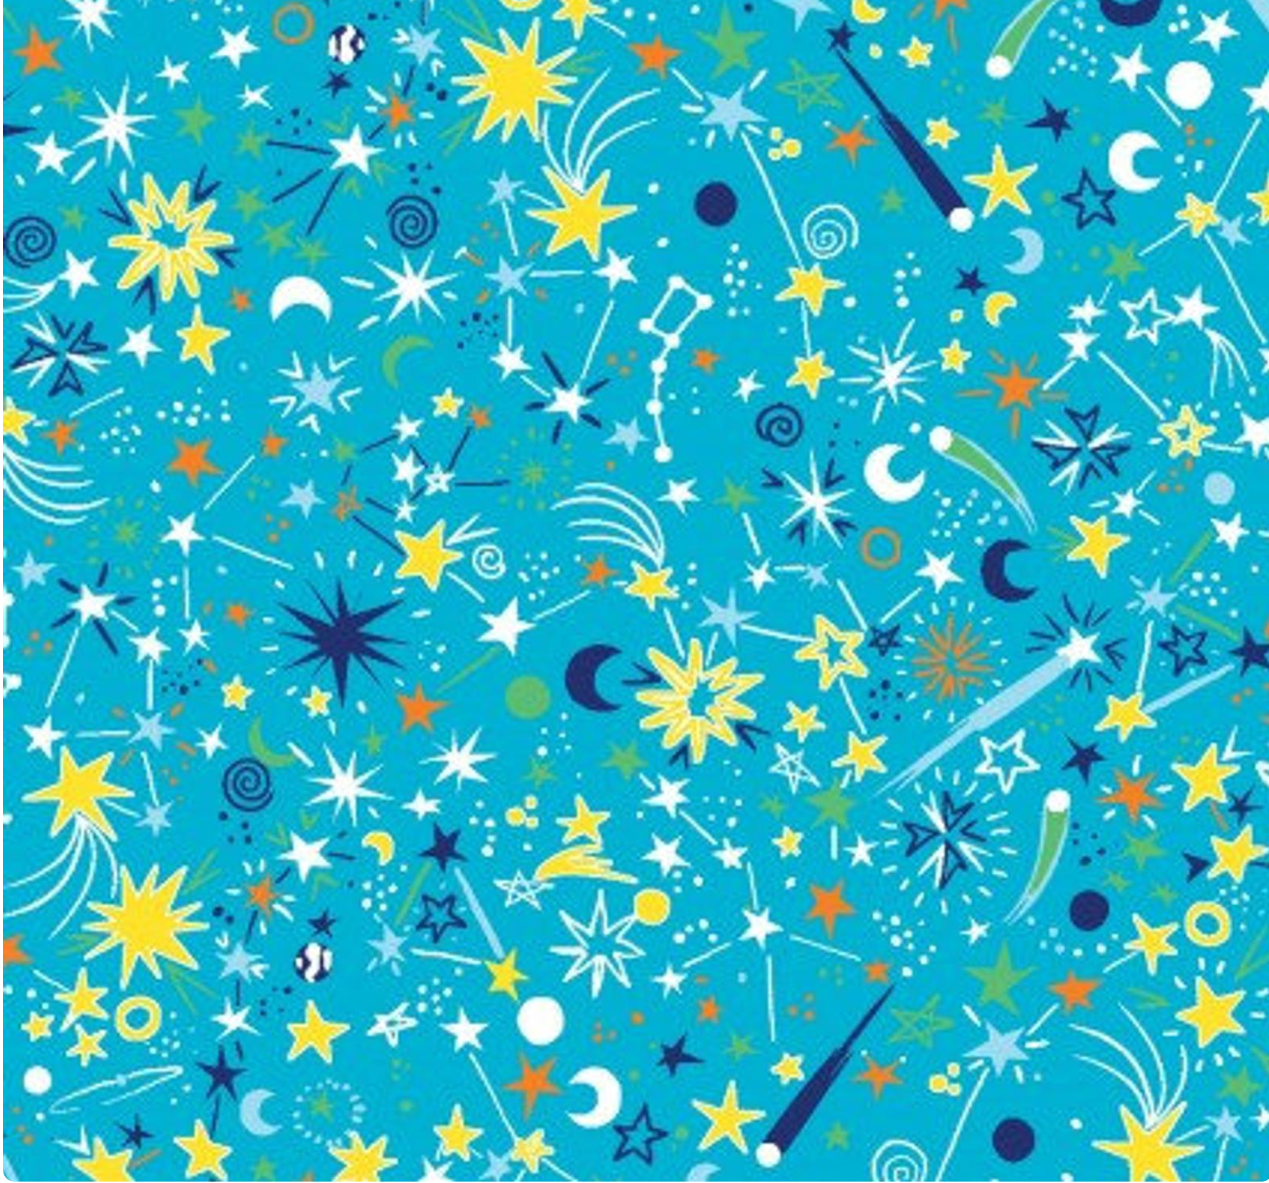 Cosmic Geo glow in the dark fabric